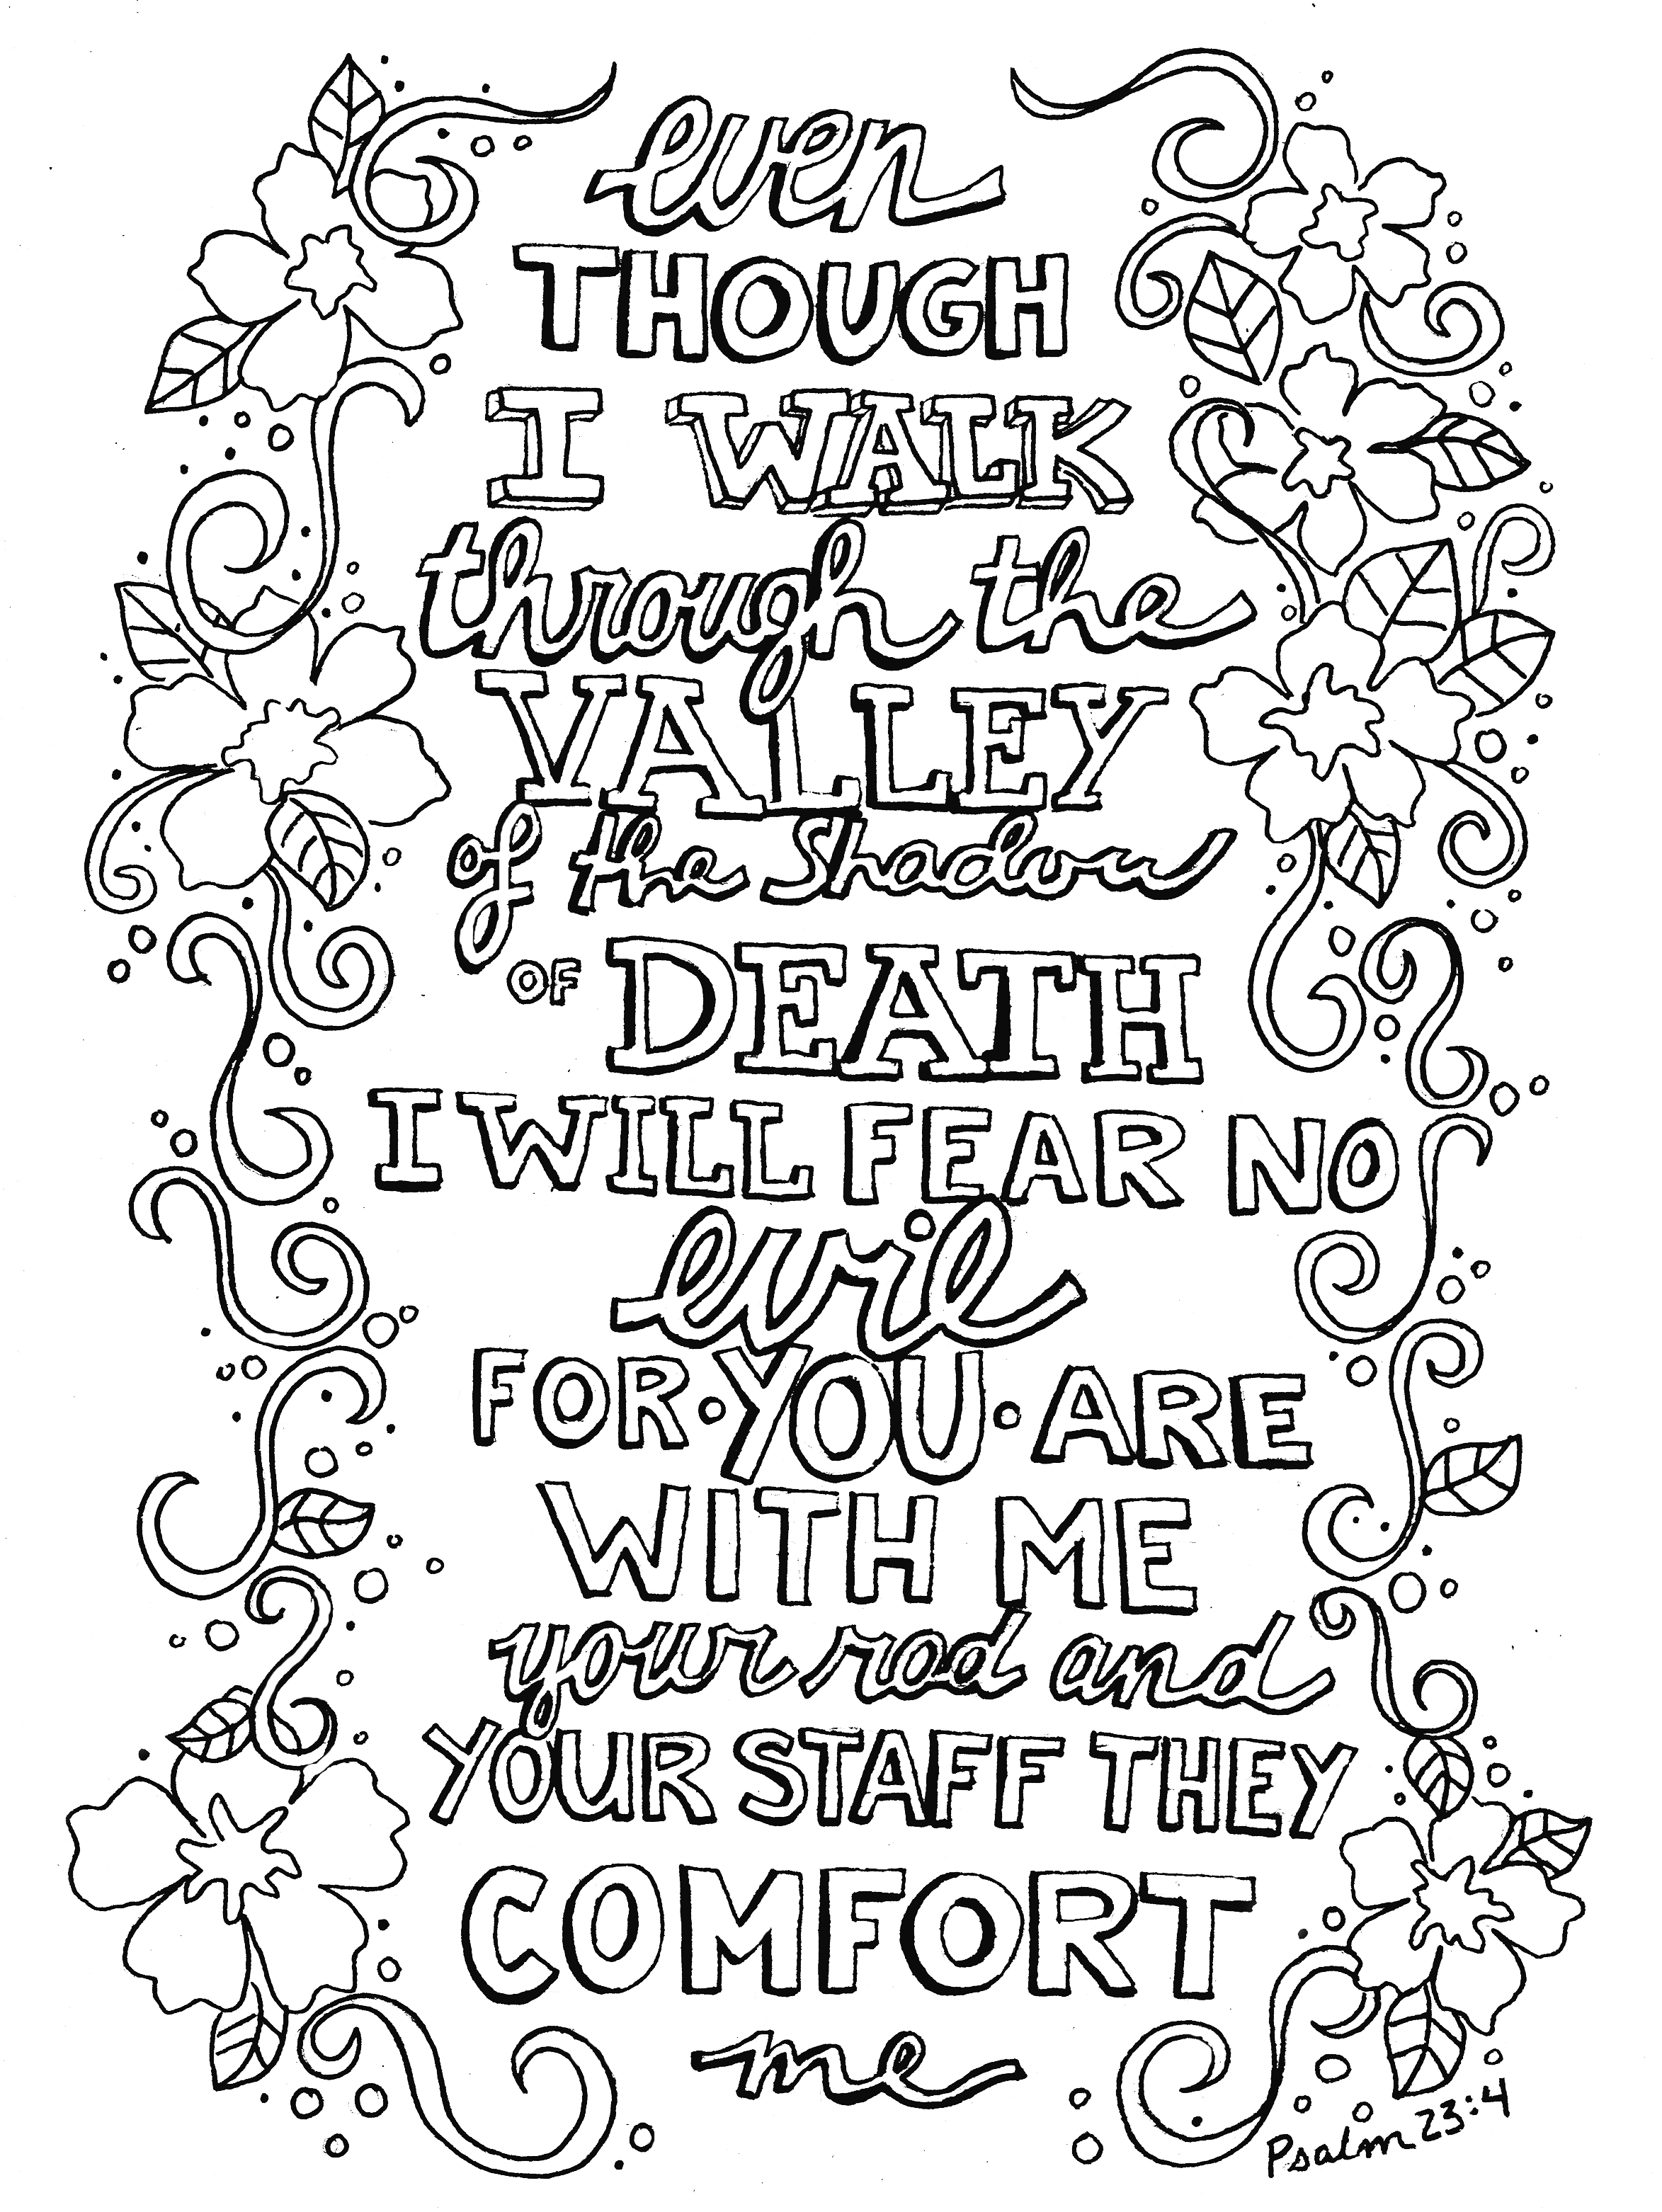 23rd psalm coloring pages Collection-Miracle Psalm 23 Coloring Page 21 FREE COLORING PAGES Part 2 9-o